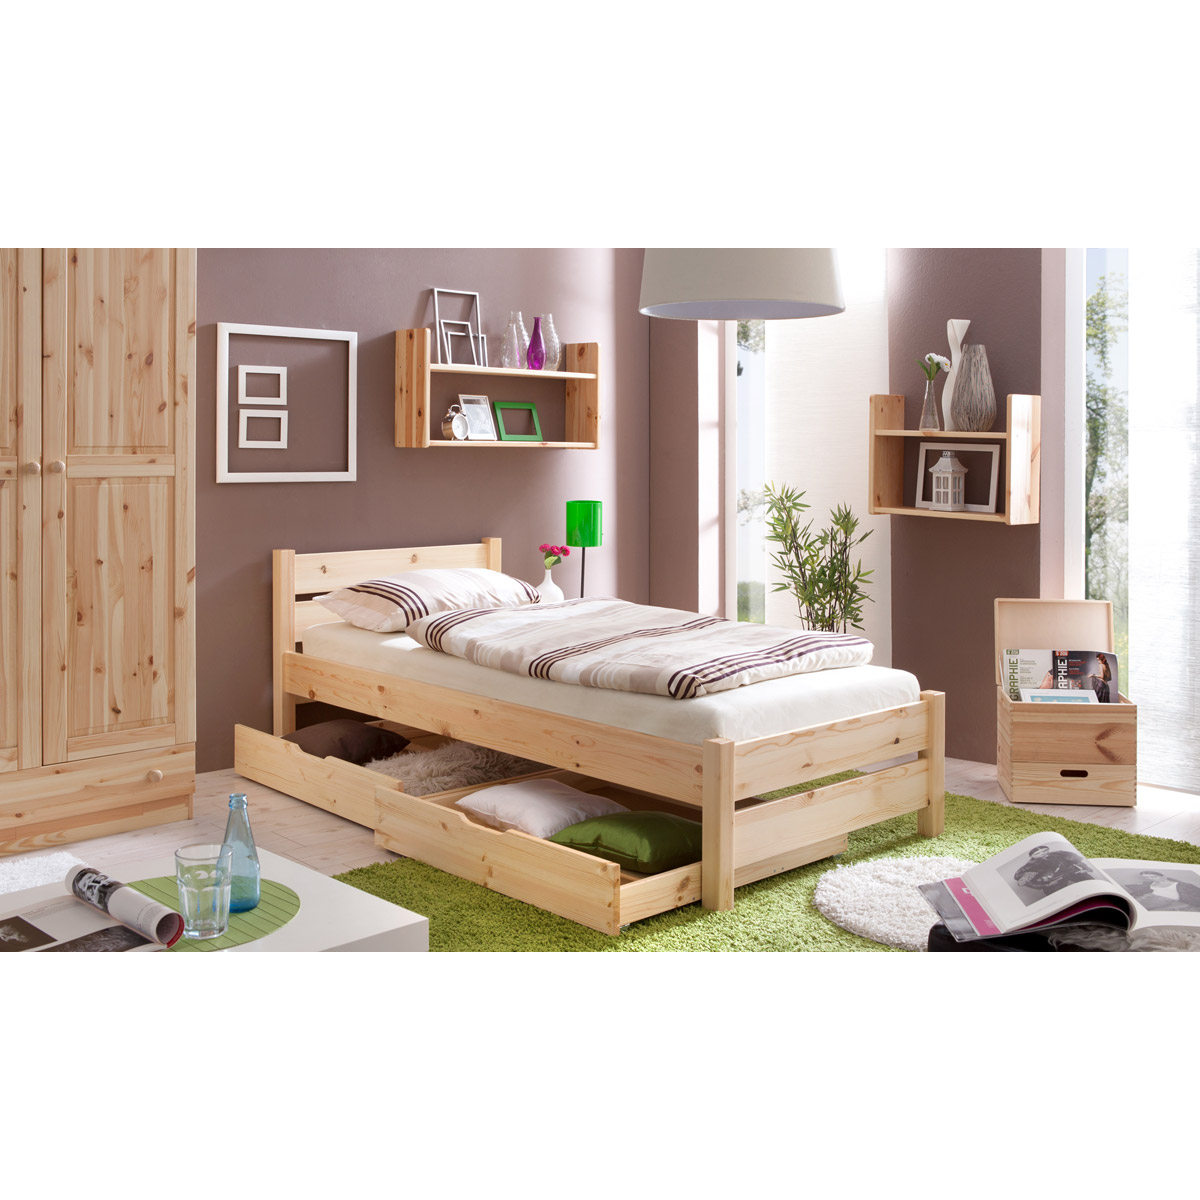 ticaa bora einzelbett kiefer natur 90x200 portofrei. Black Bedroom Furniture Sets. Home Design Ideas